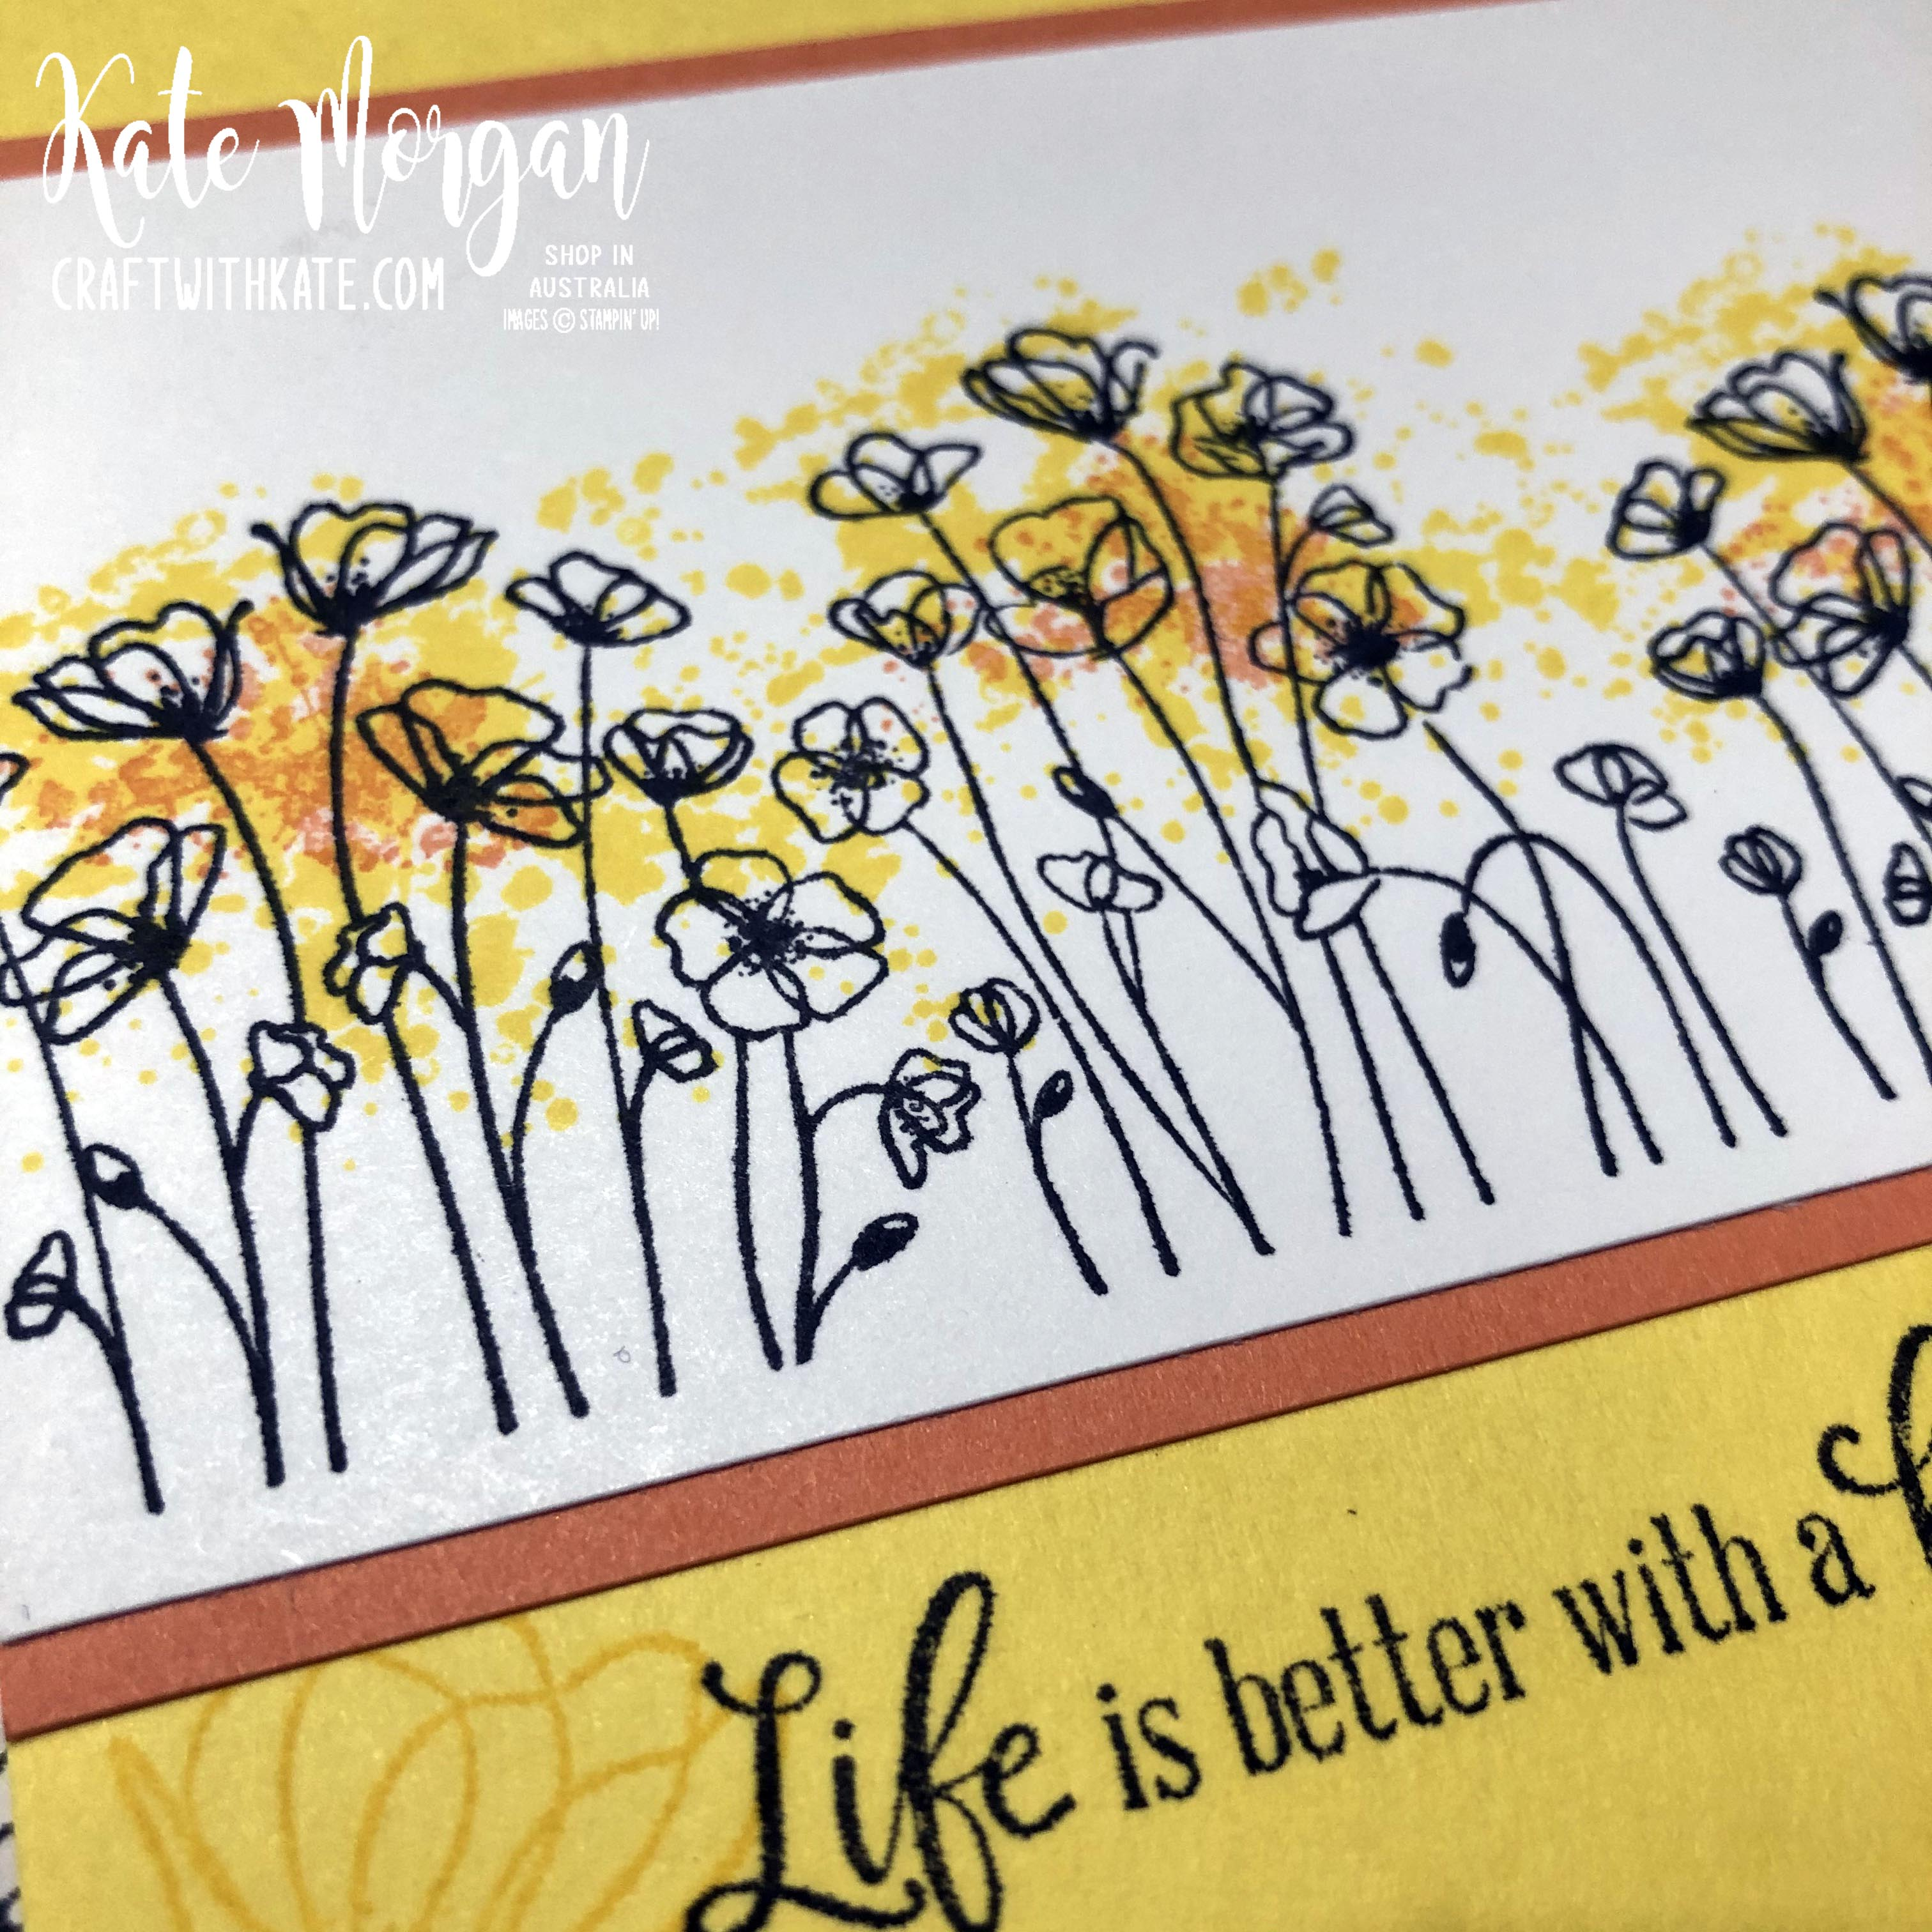 Peaceful Poppies cards by Kate Morgan, Stampin Up Australia 2020.